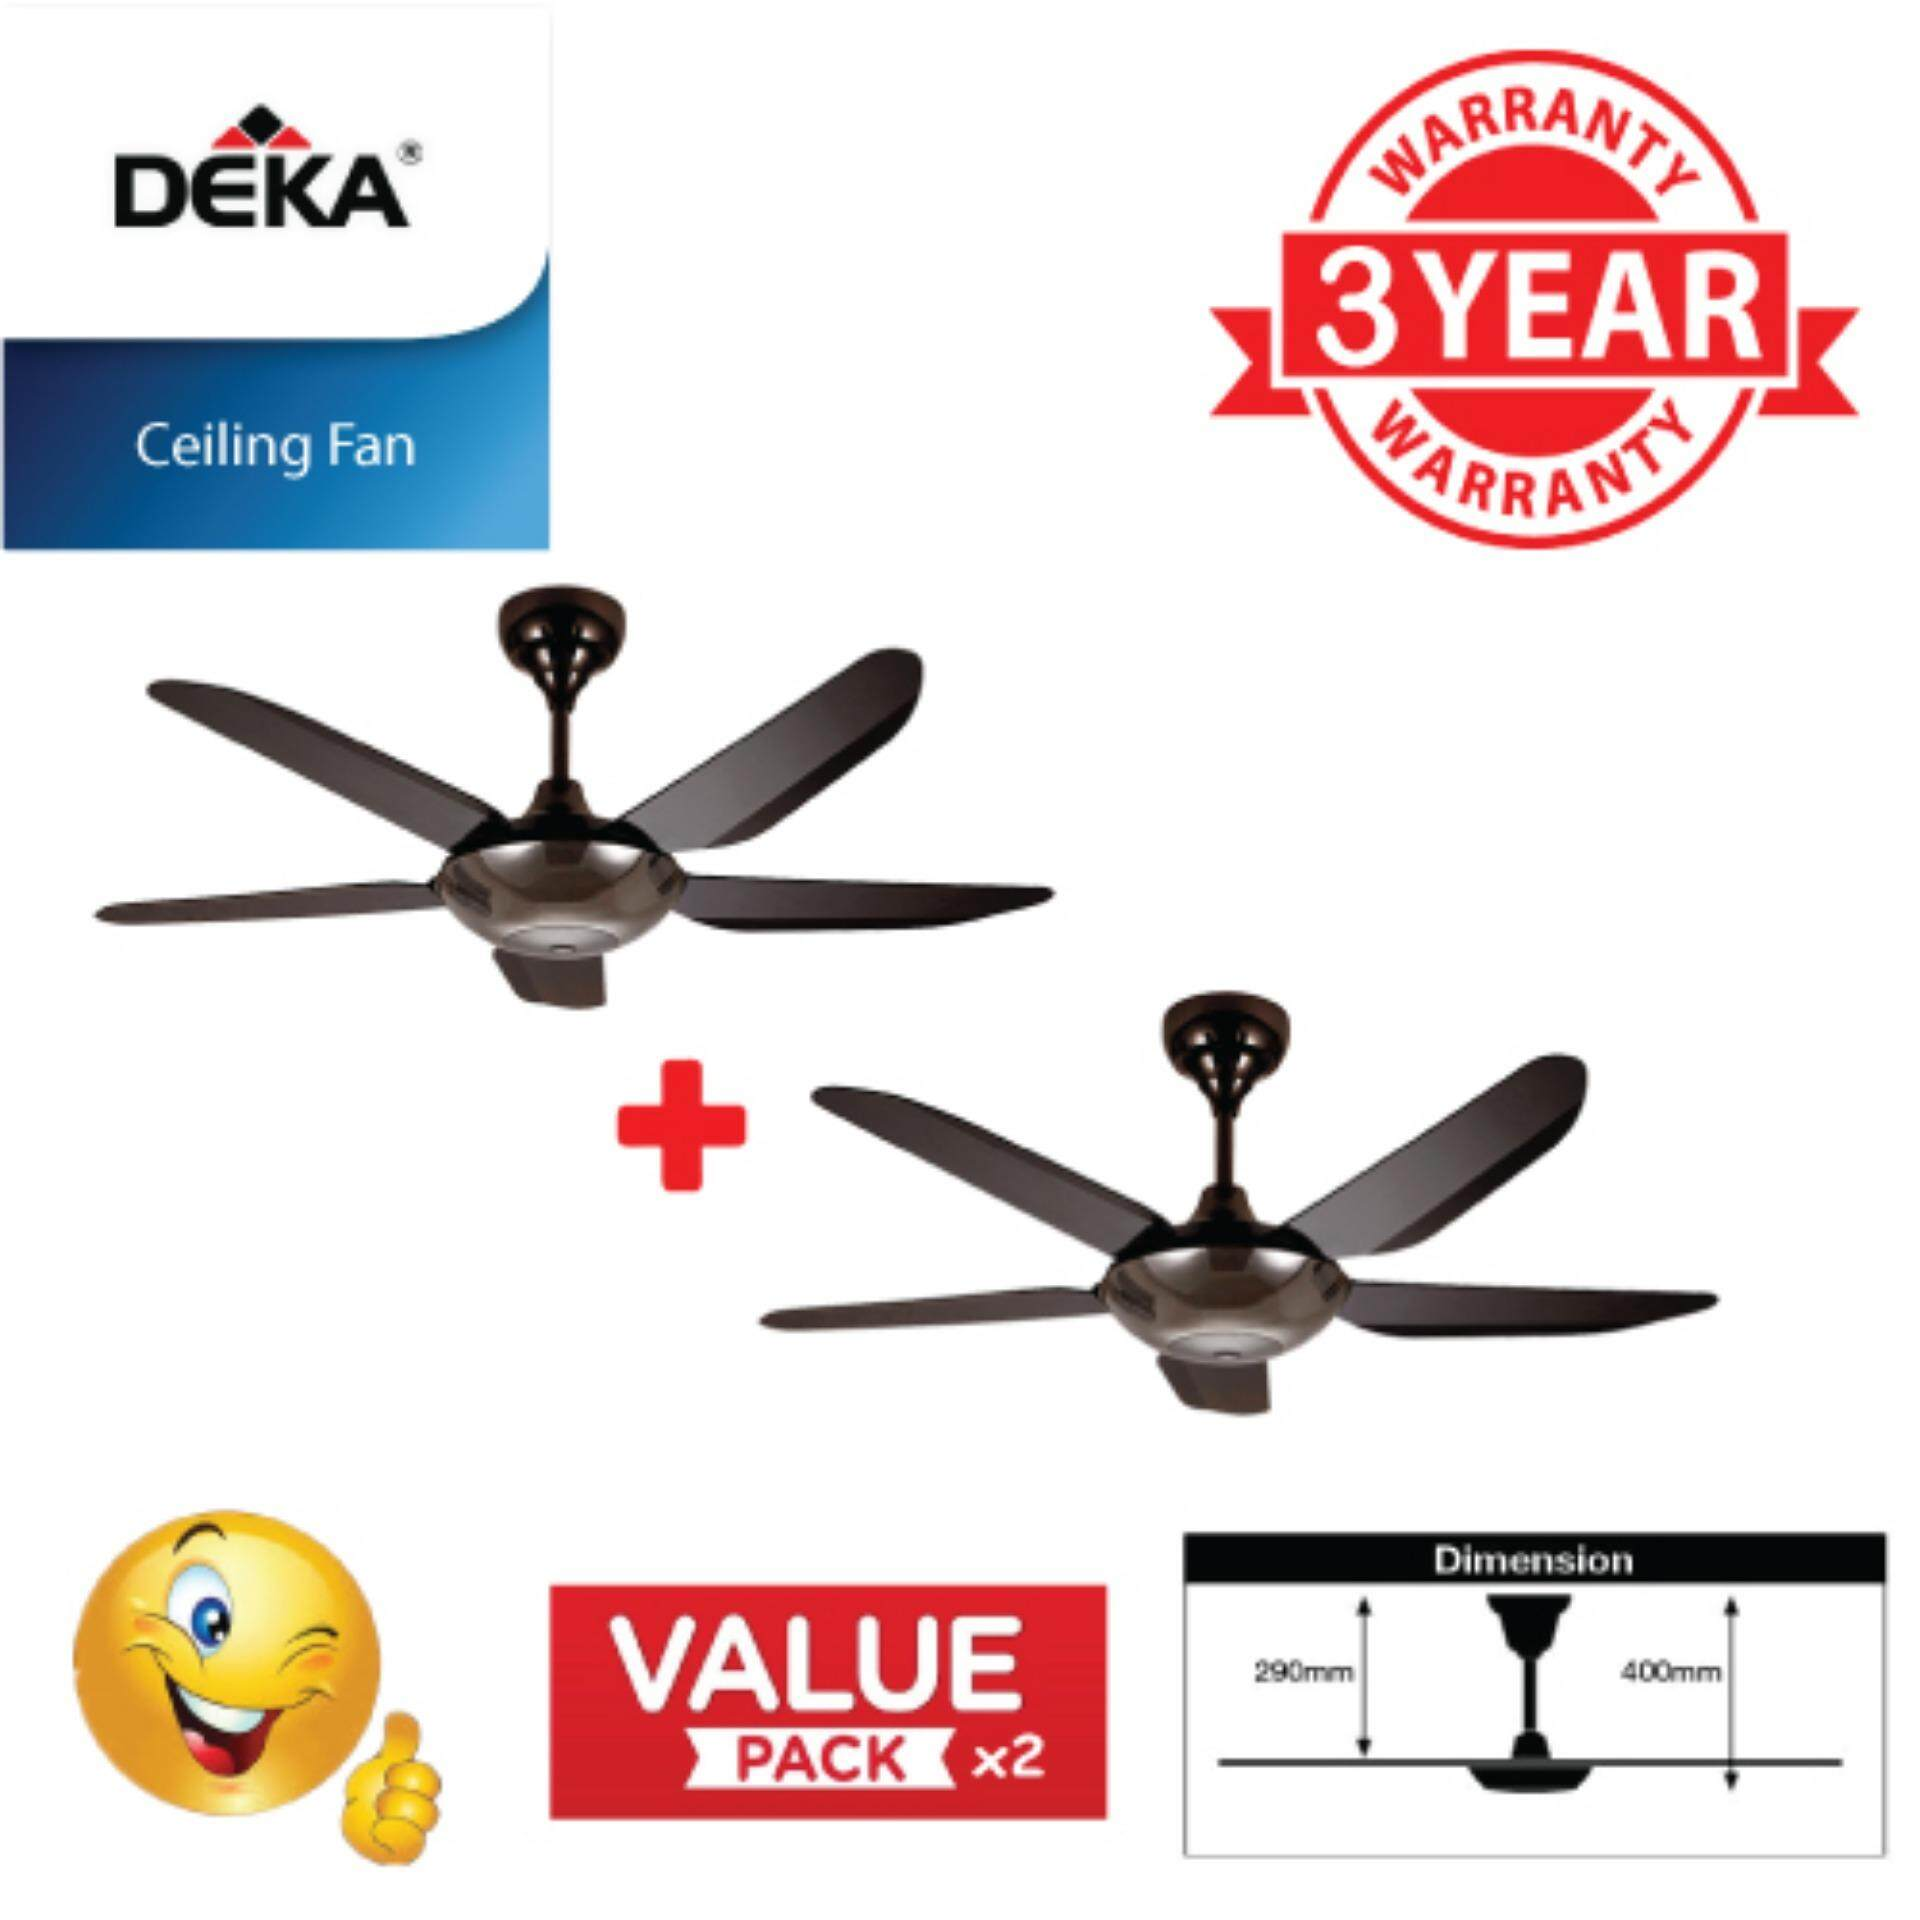 CEILING FAN DEKA BABY6N-5B-GM C/W RC (2 Pack)